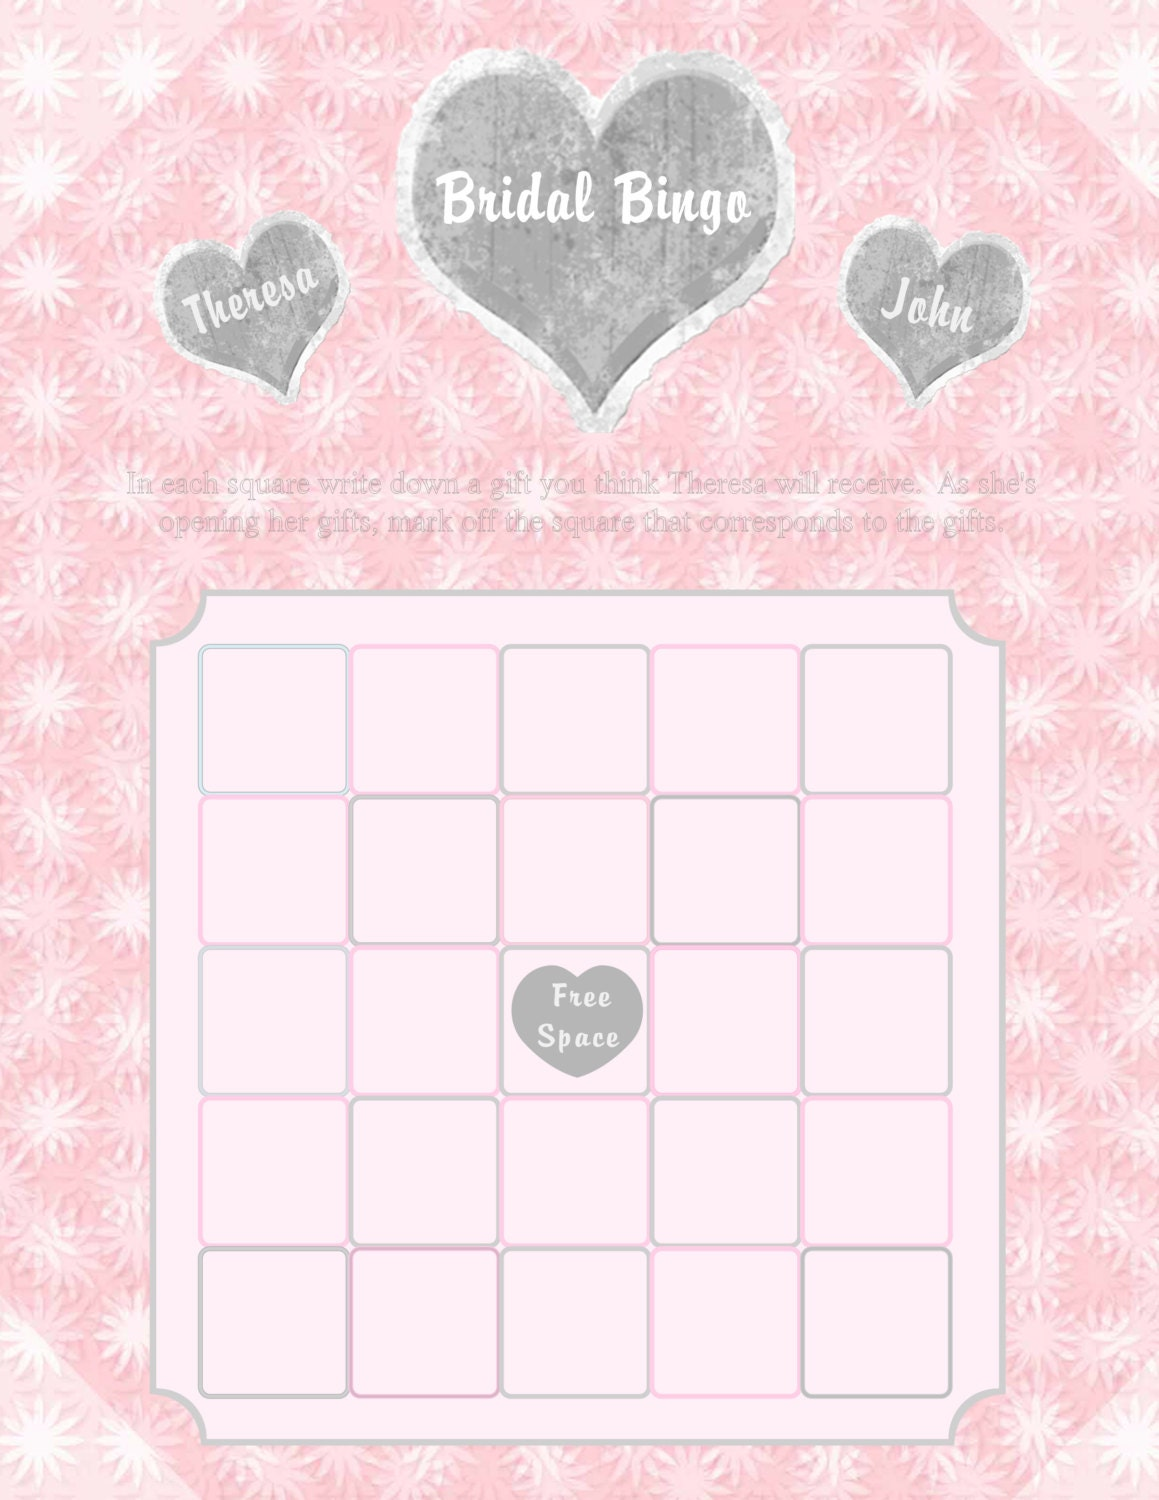 Items similar to Printable Bridal Shower Bingo Cards on Etsy